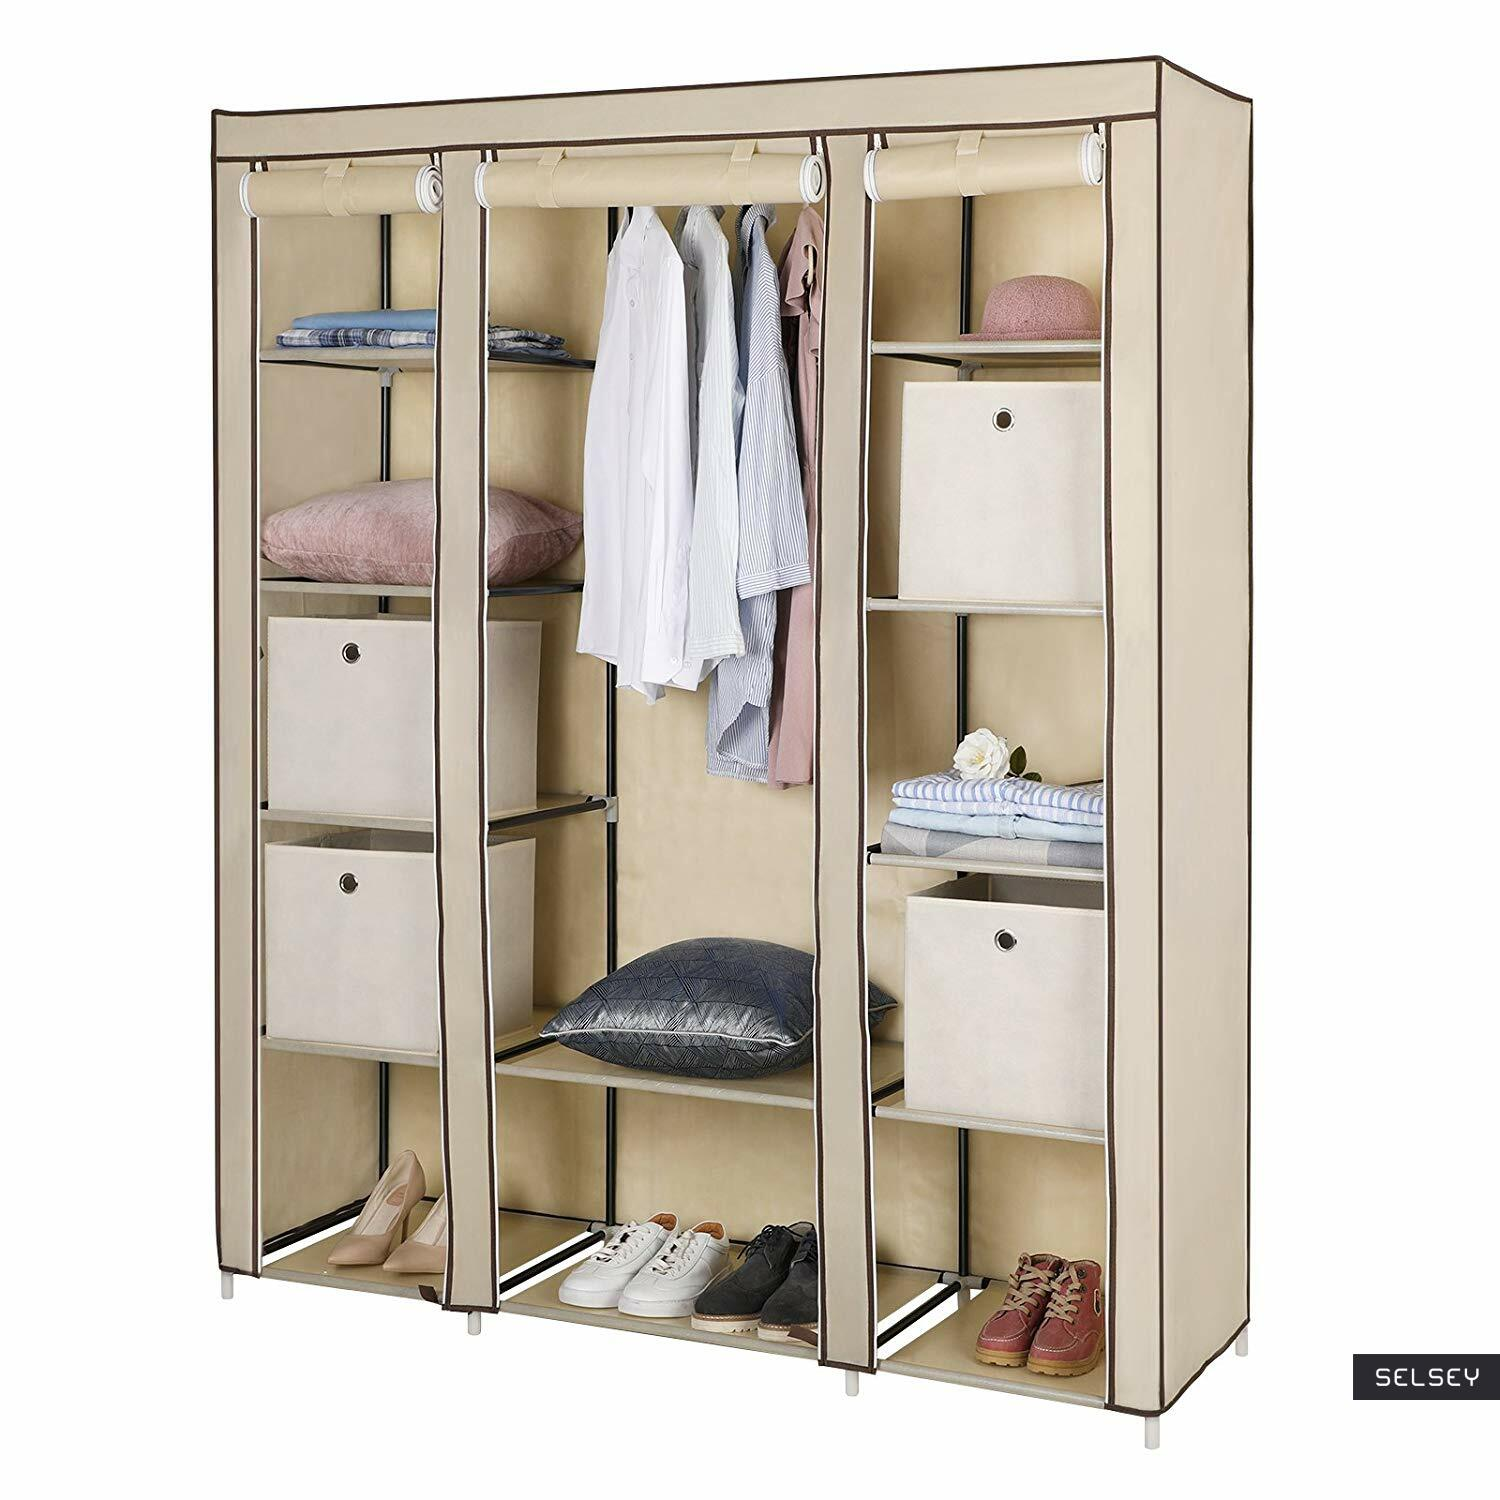 baratins armoire penderie mobile creme